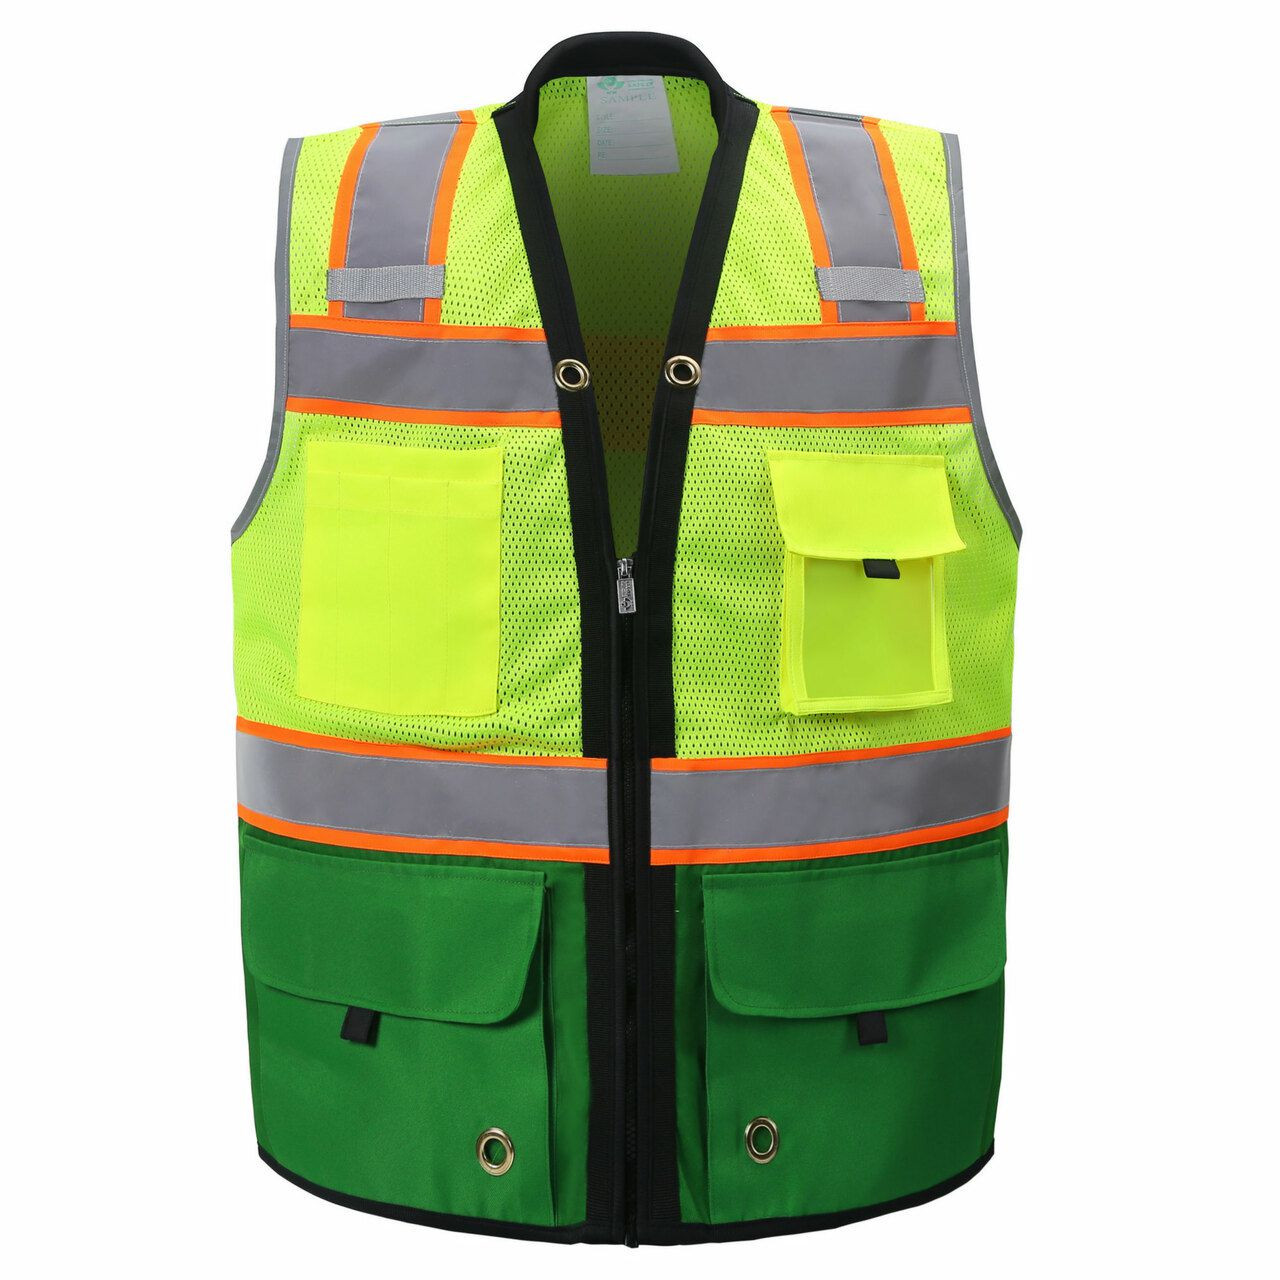 Two Tone Class 2 Premium Surveyors Safety Vest with Green Solid Bottom